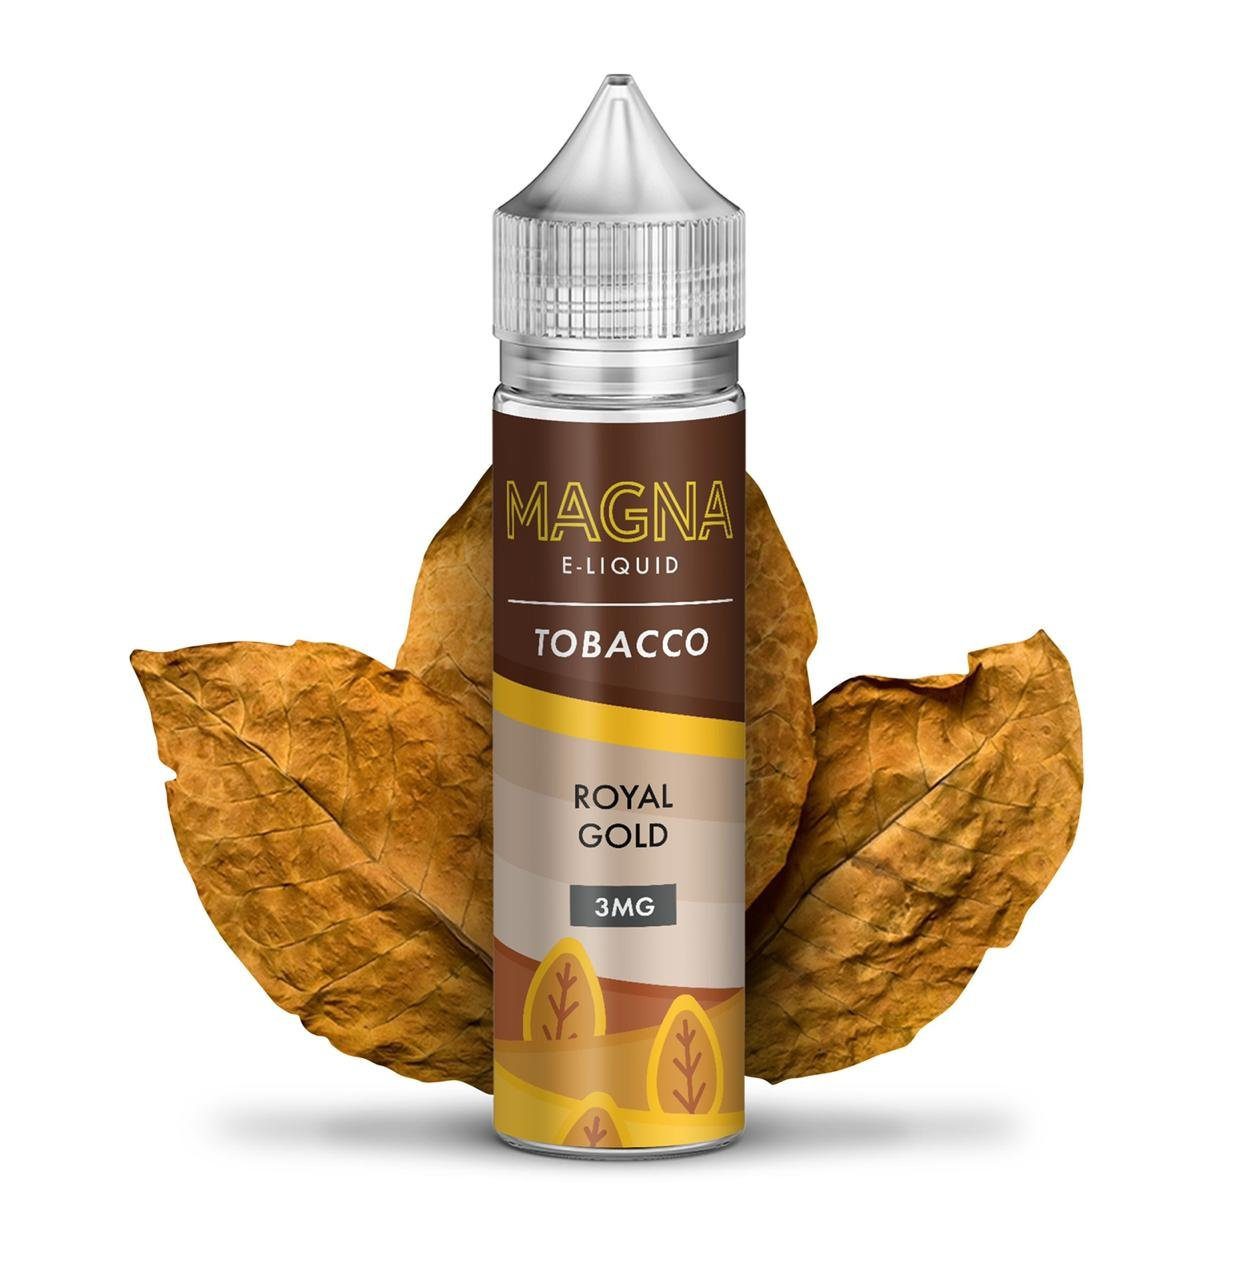 Royal Gold - Tobacco - Magna